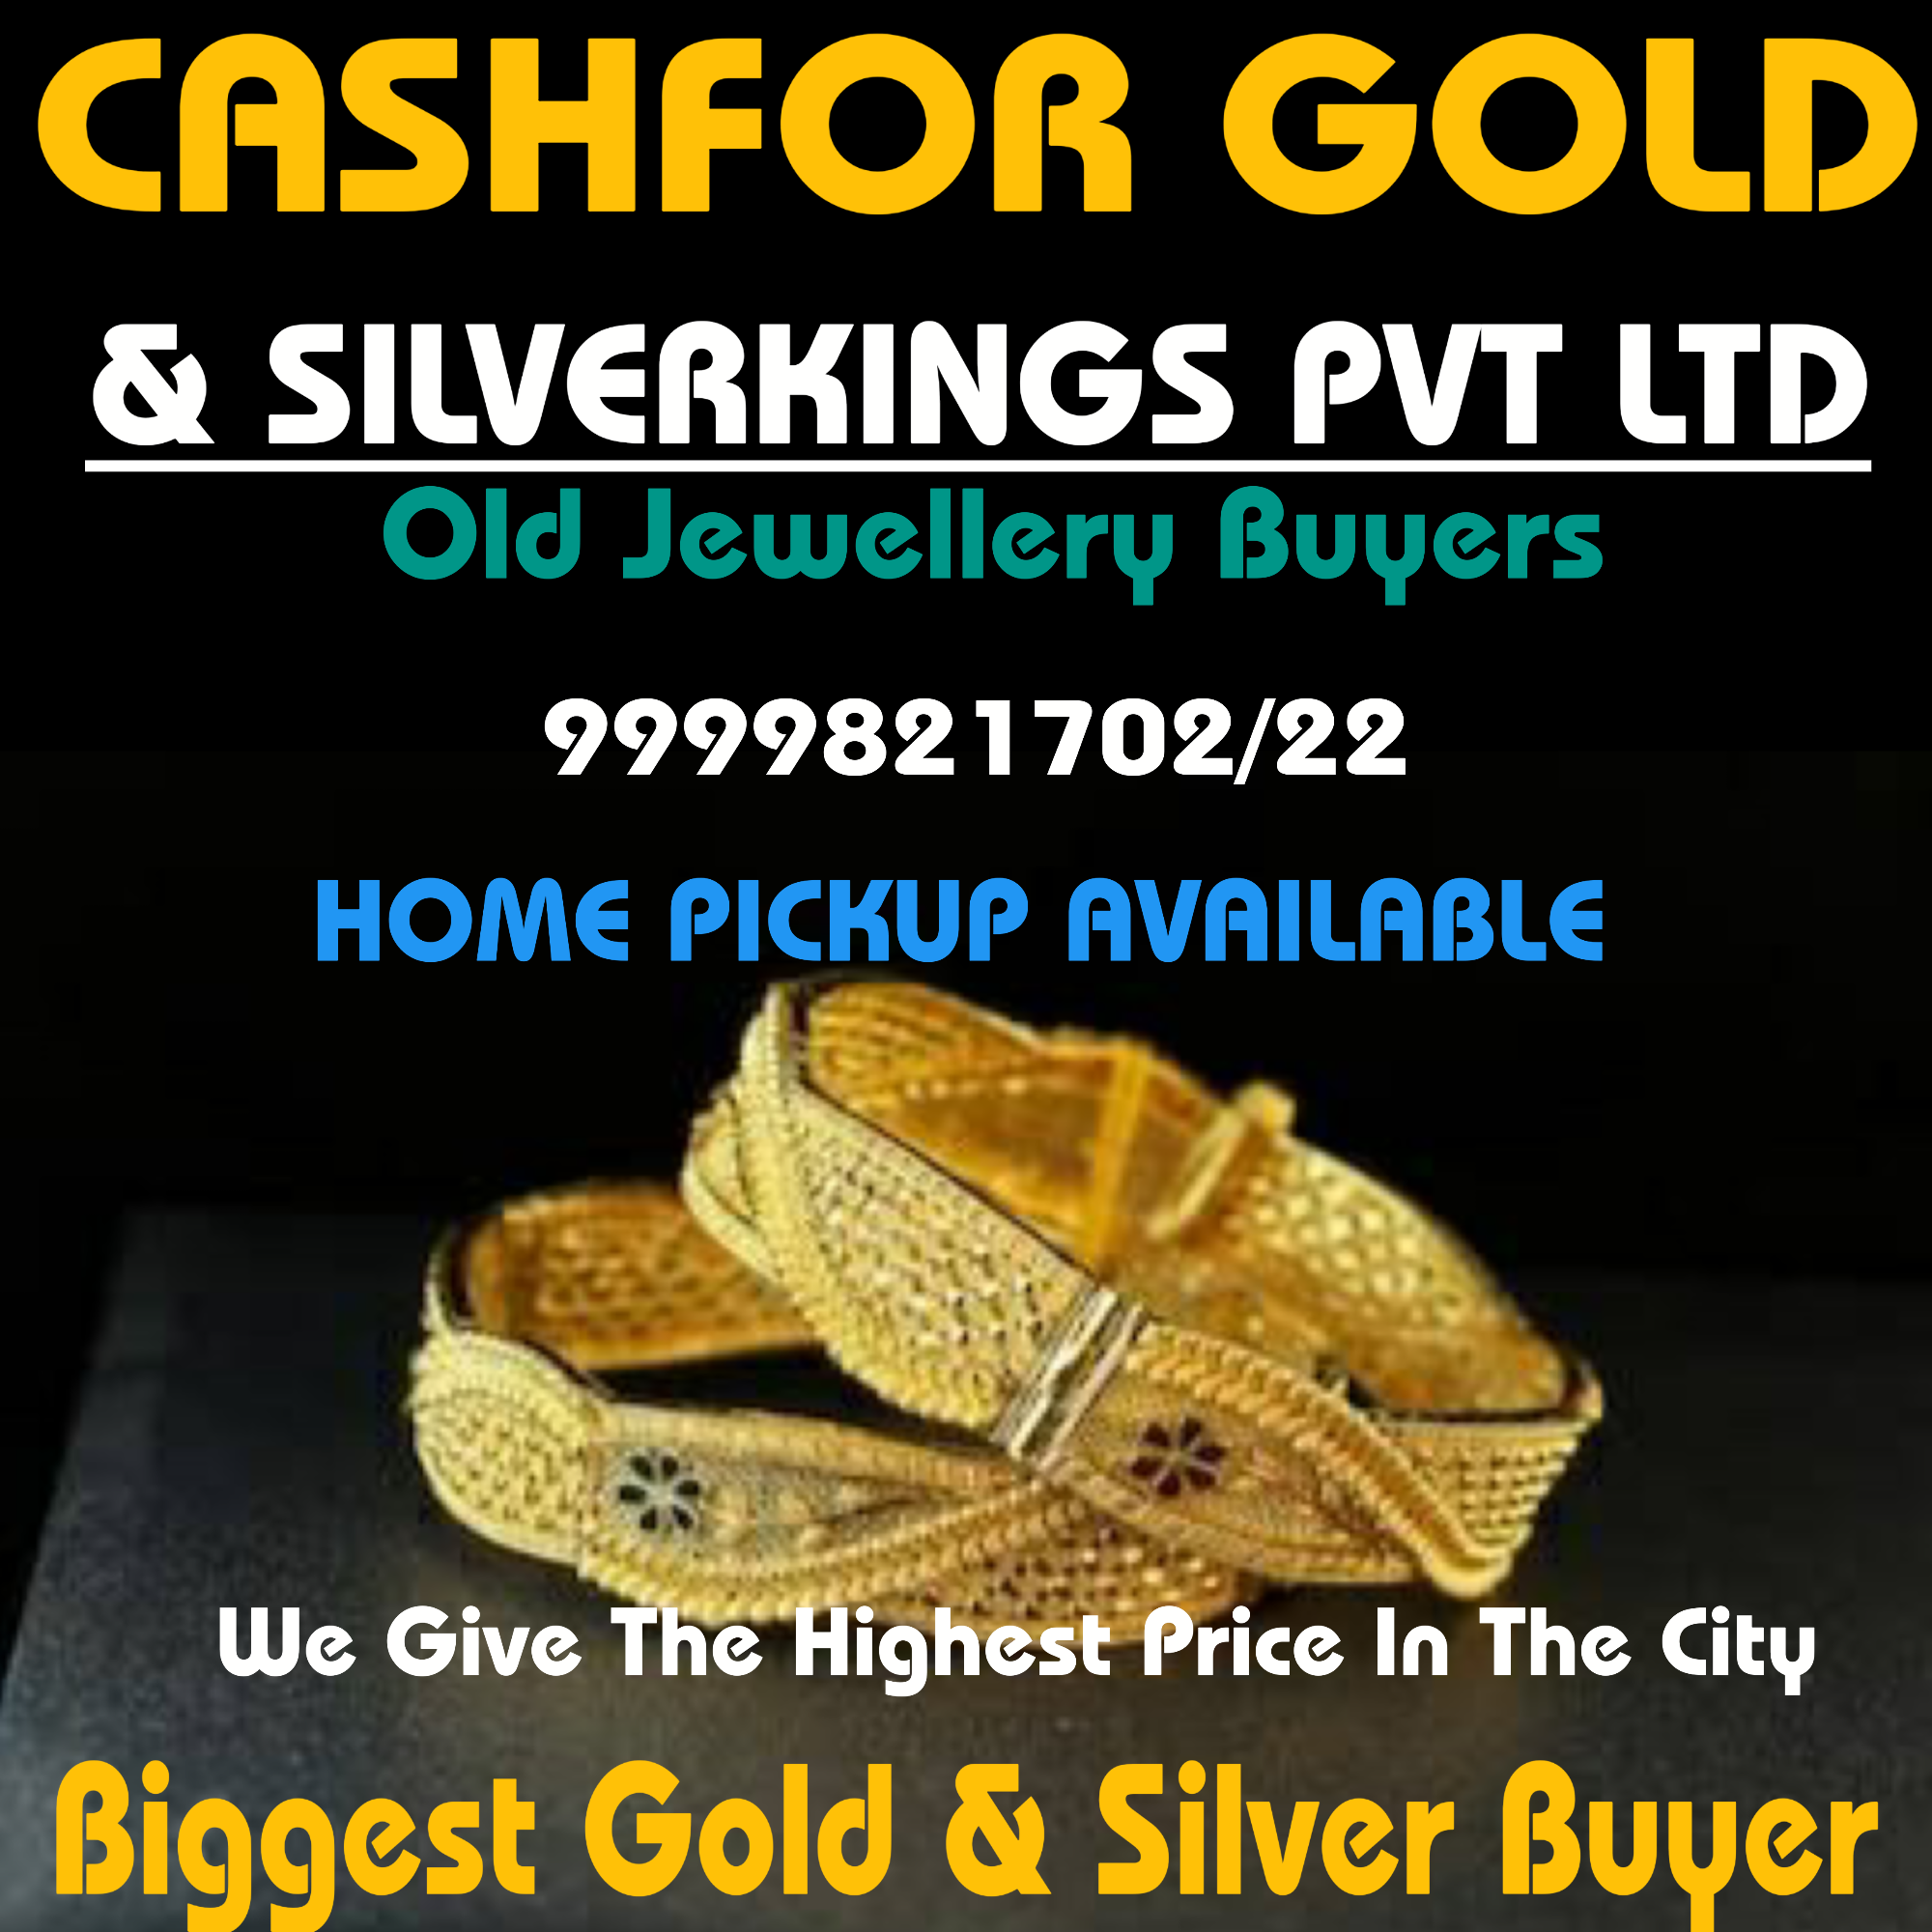 Silver jewellery for cash in khurejji